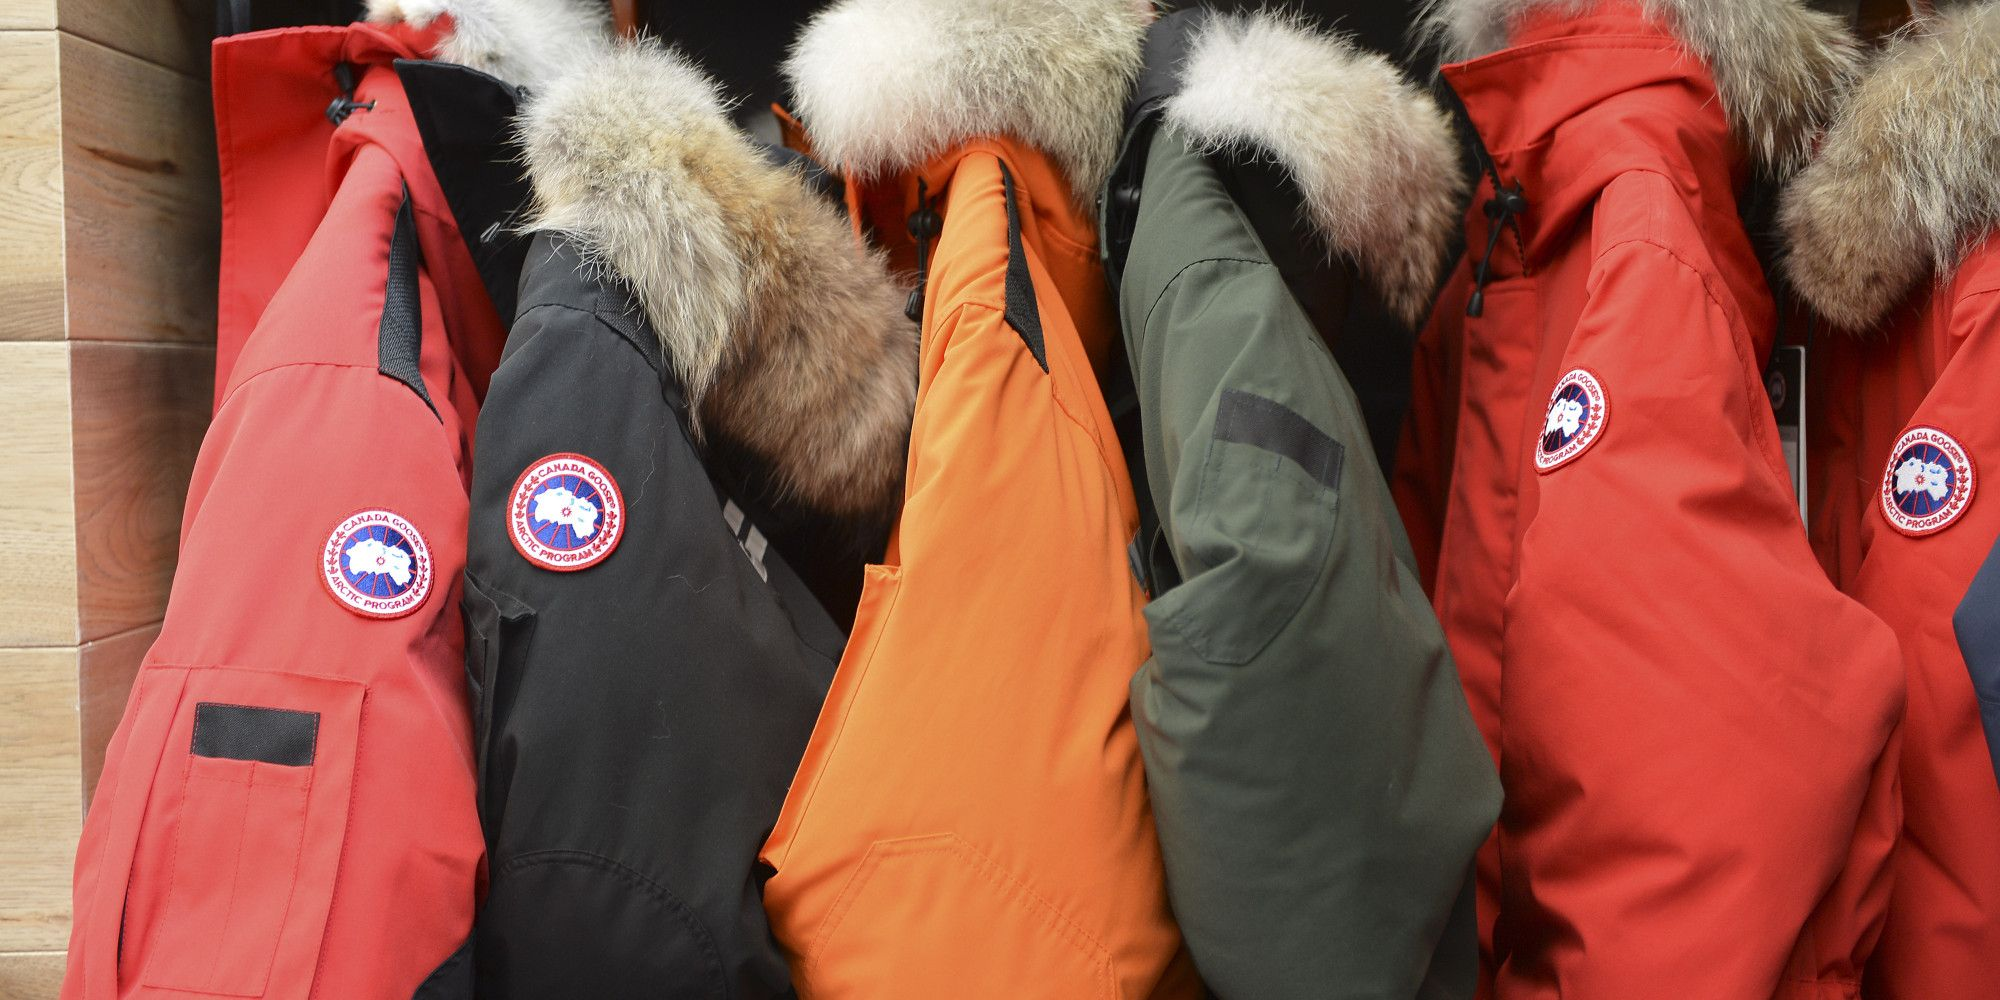 Canada Goose Celebrities Google Search Canada Goose Winter Outfits Milan Fashion Weeks